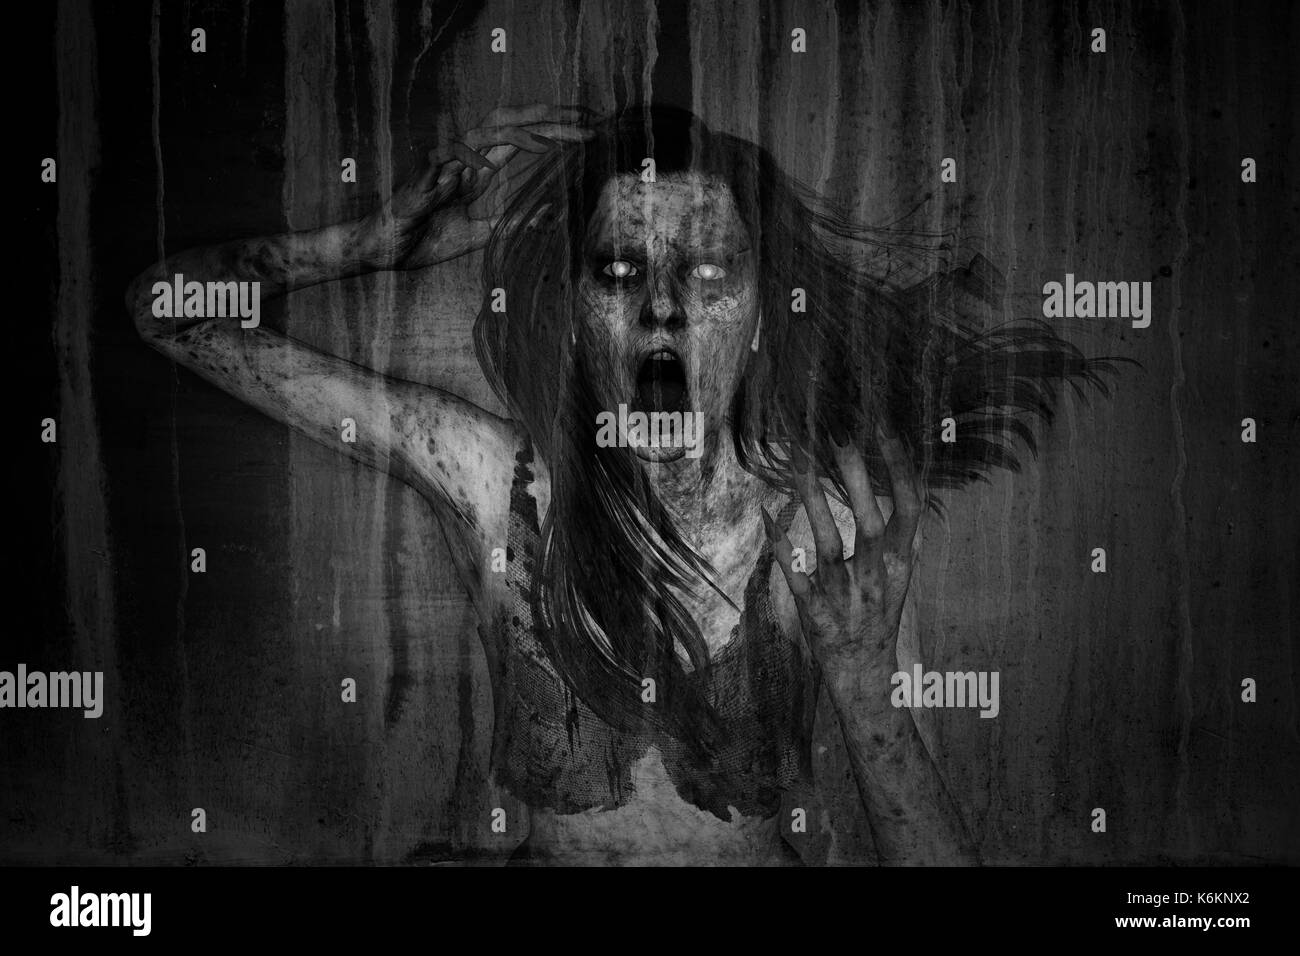 3d illustration of scary ghost woman moaning in the dark,Horror